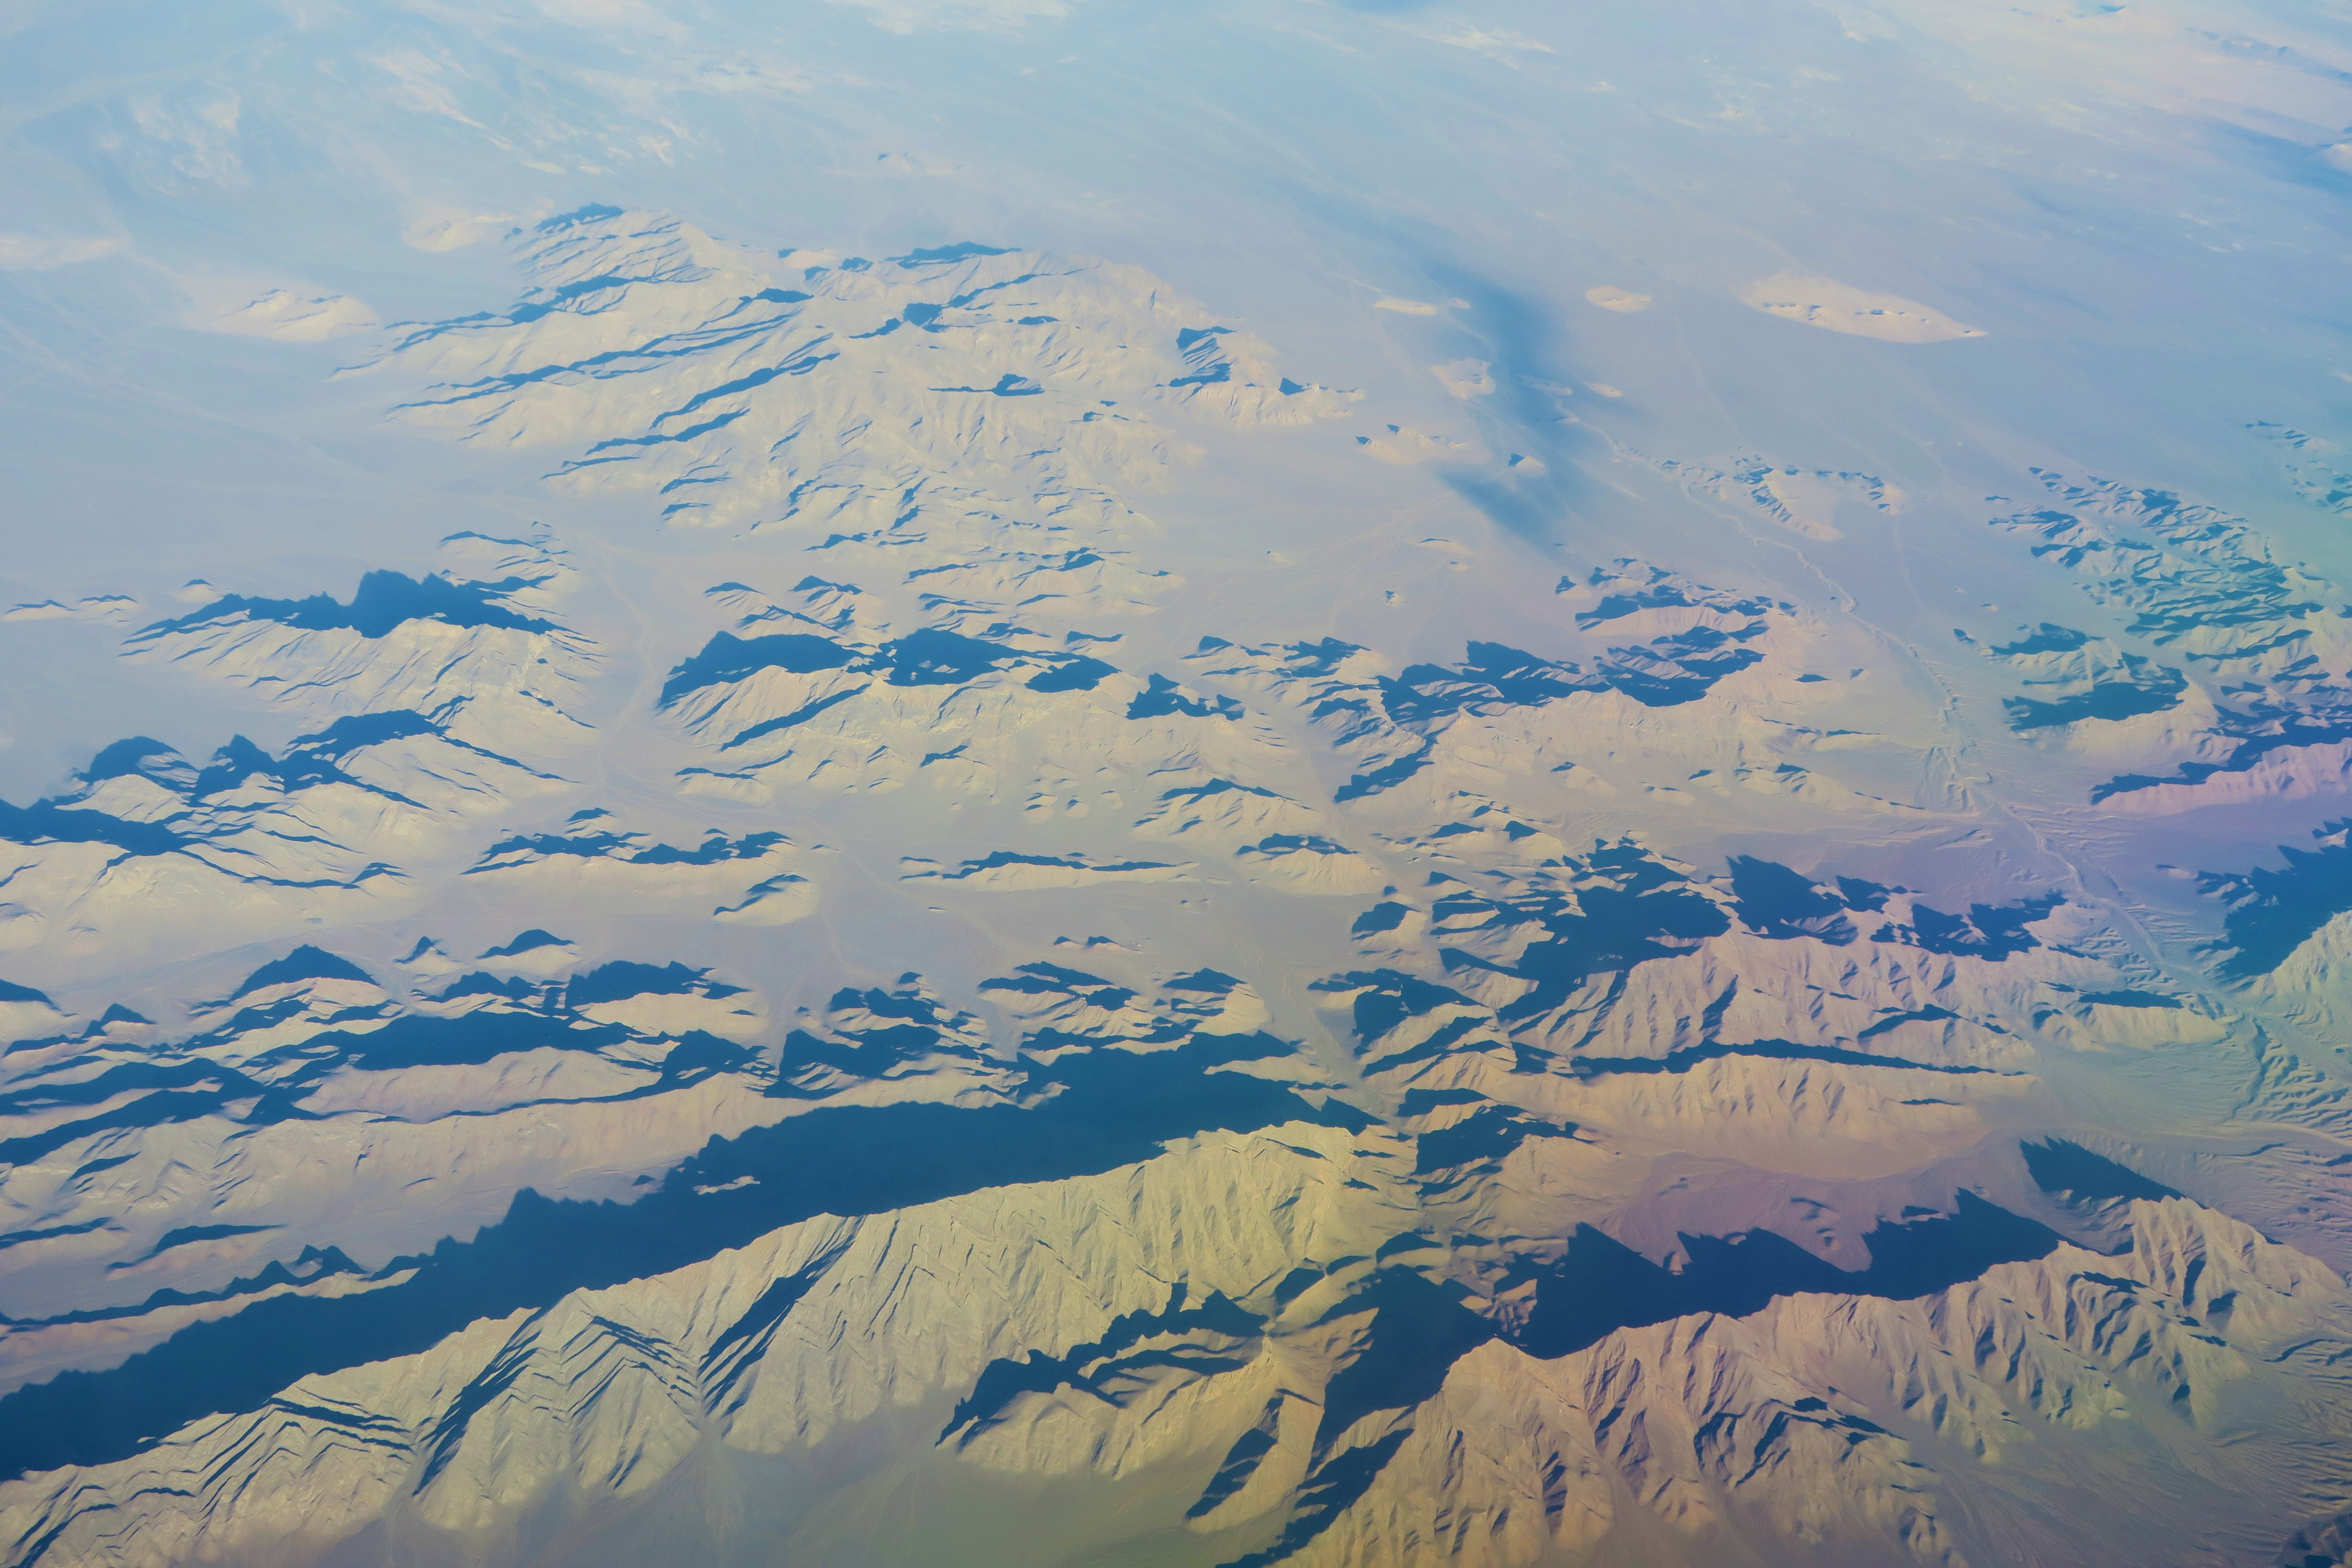 Bird's Eye View Of Snow Capped Moountains